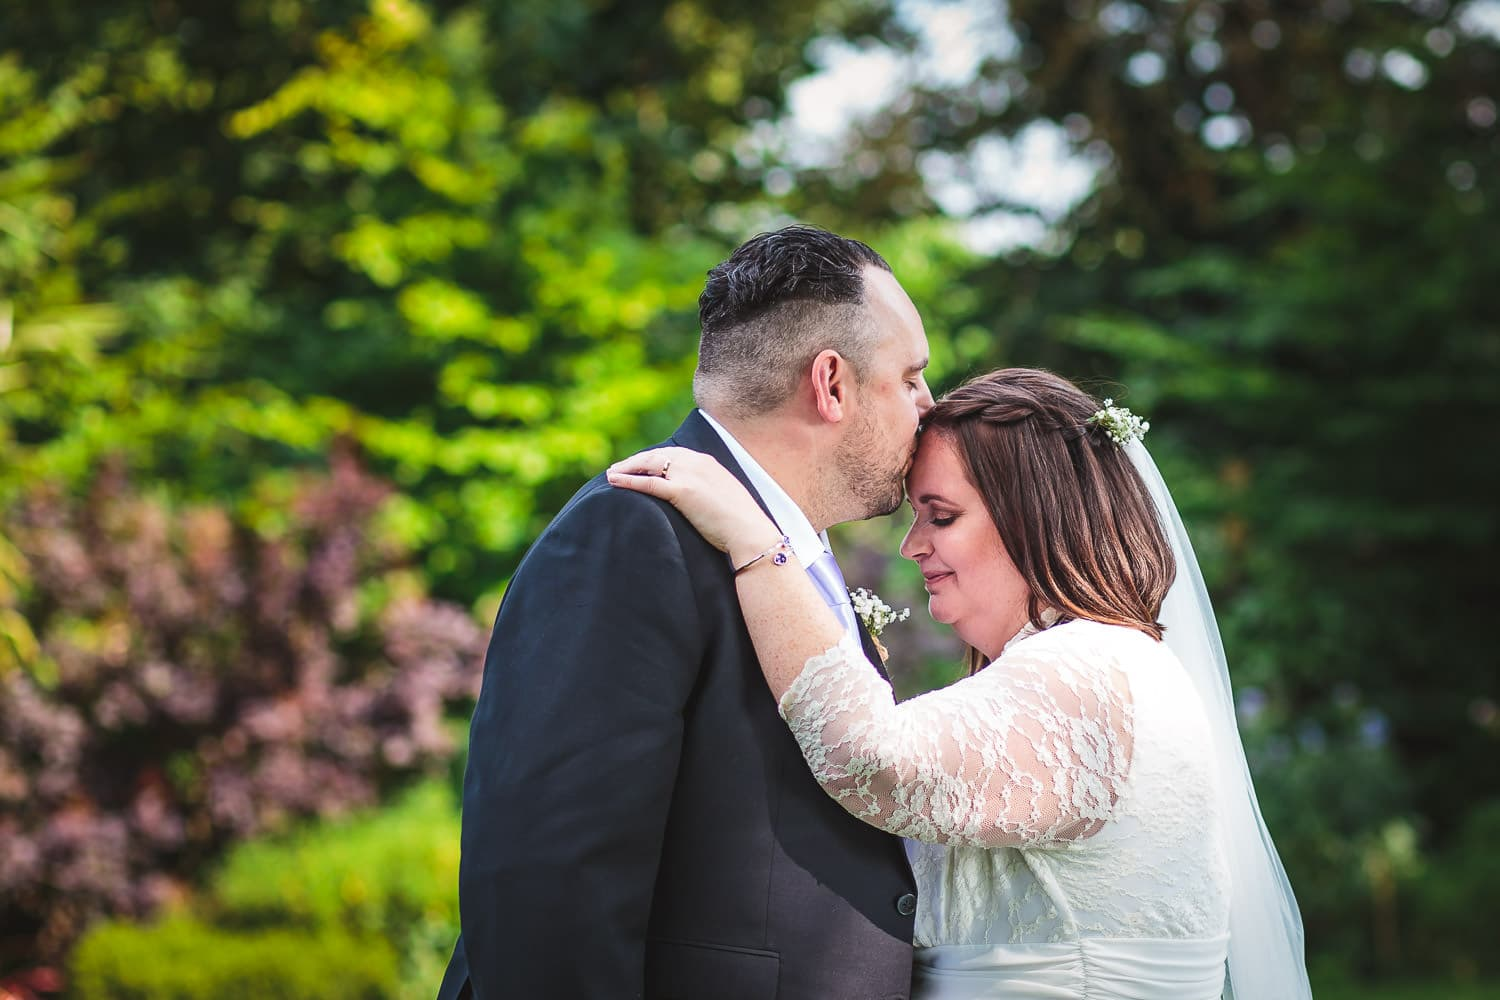 groom gently kisses brides forehead during portait session at warwick house wedding